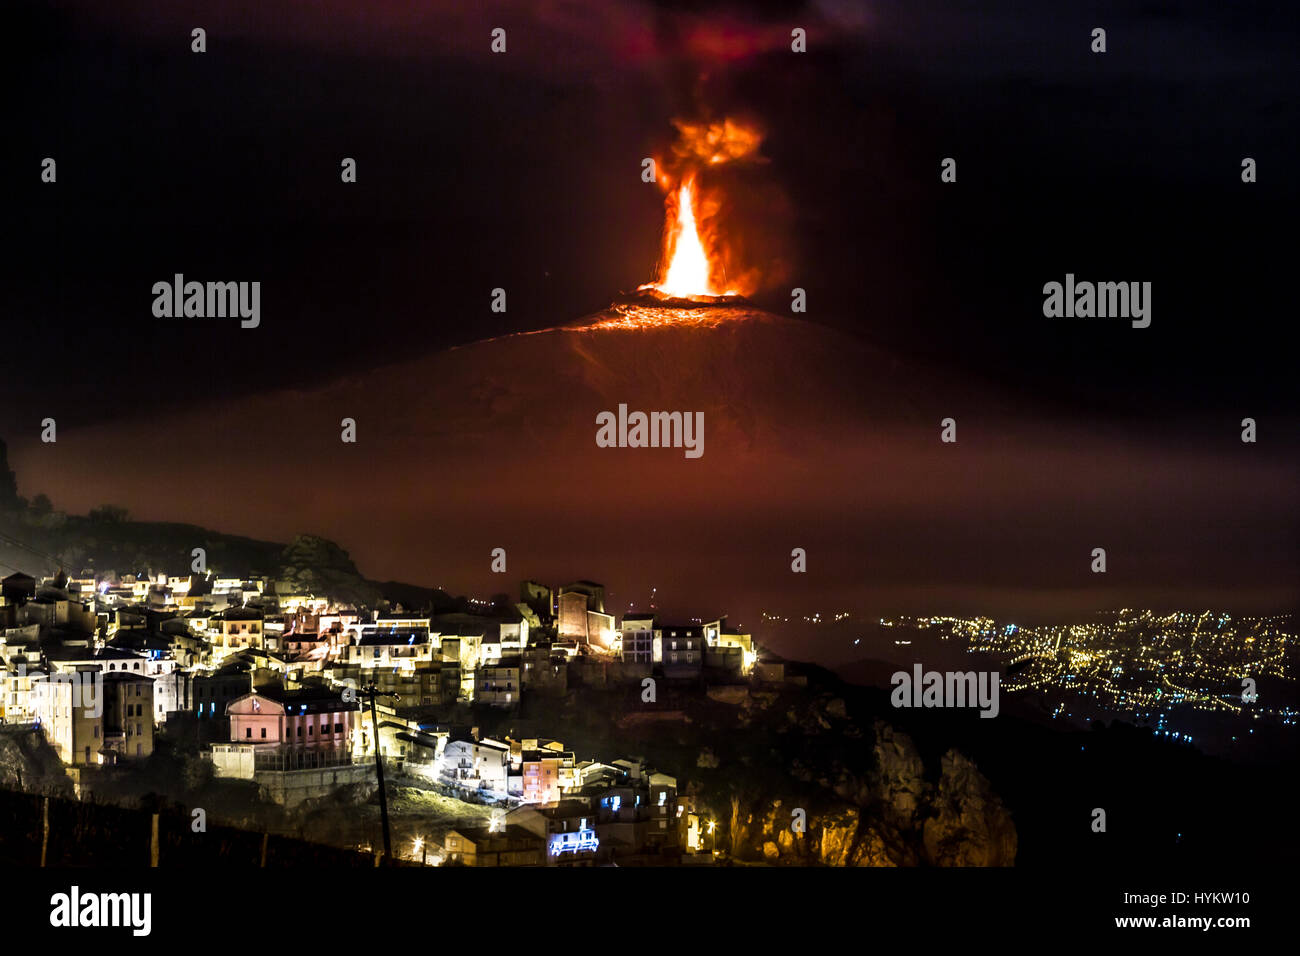 MESSINA, SICILY: A night picture of an eruption at Mount Etna. A NUCLEAR mushroom-like cloud blasting from Mount Etna in Sicily have been captured by an astonished local man. Roaring flames and huge plumes of smoke can be seen pumping out of the top of one of the world's most active volcanoes.  Pictures show how the residents of Sicily live in the shadow of this monster mountain, which measures eleven thousand feet in height and is where the ancient Roman god of fire, Vulcan built his workshop. Agriculture Officer Fernando Famiani (51) from San Teodoro, Messina in Sicily snapped the imposing M Stock Photo